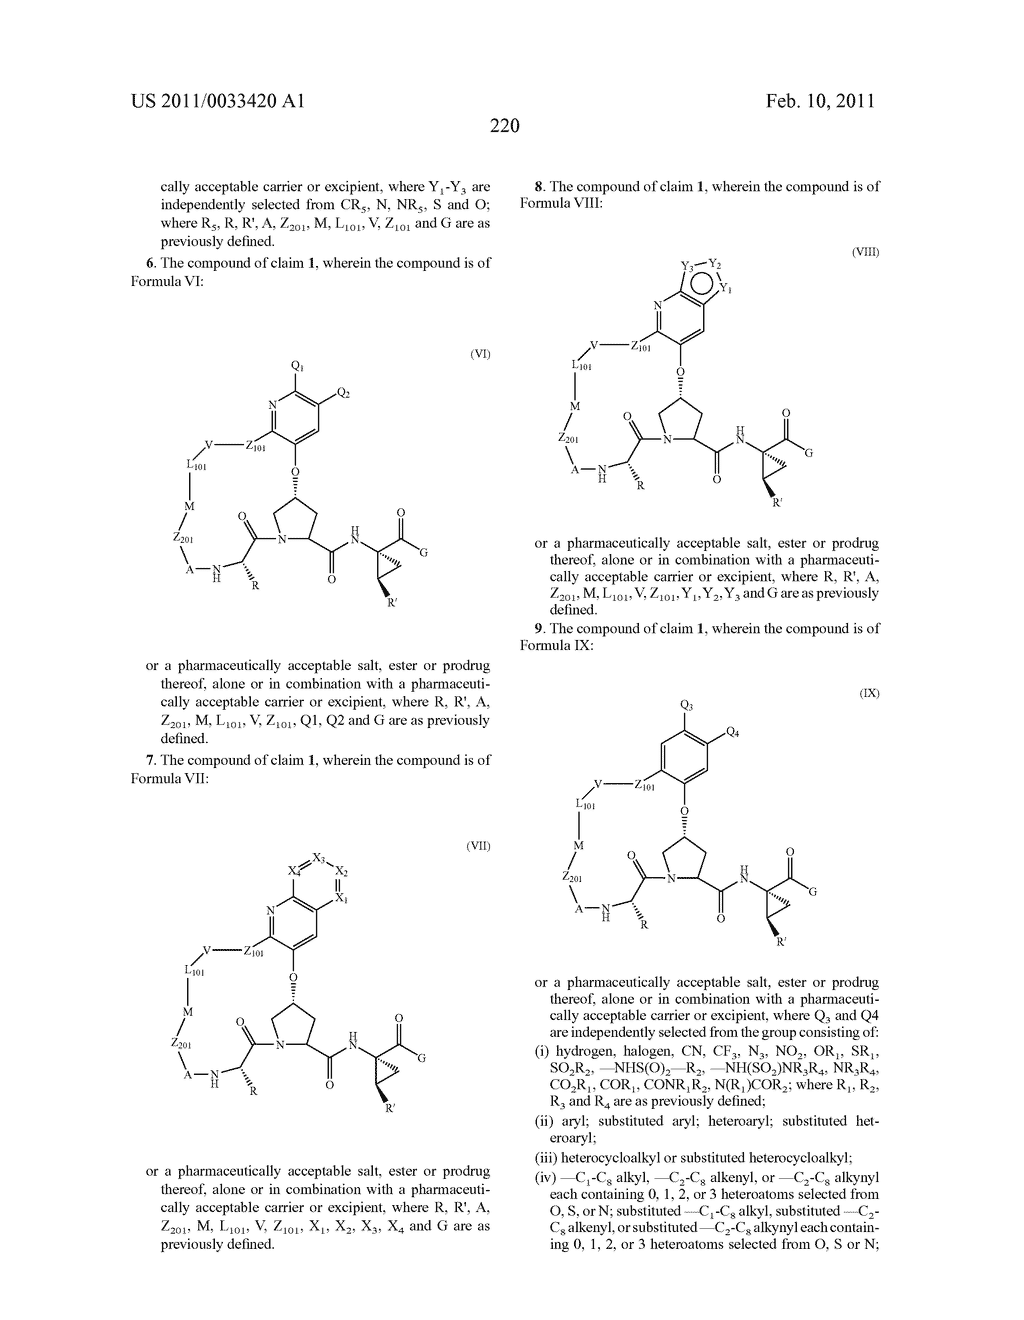 MACROCYCLIC COMPOUNDS AS HEPATITIS C VIRUS INHIBITORS - diagram, schematic, and image 221